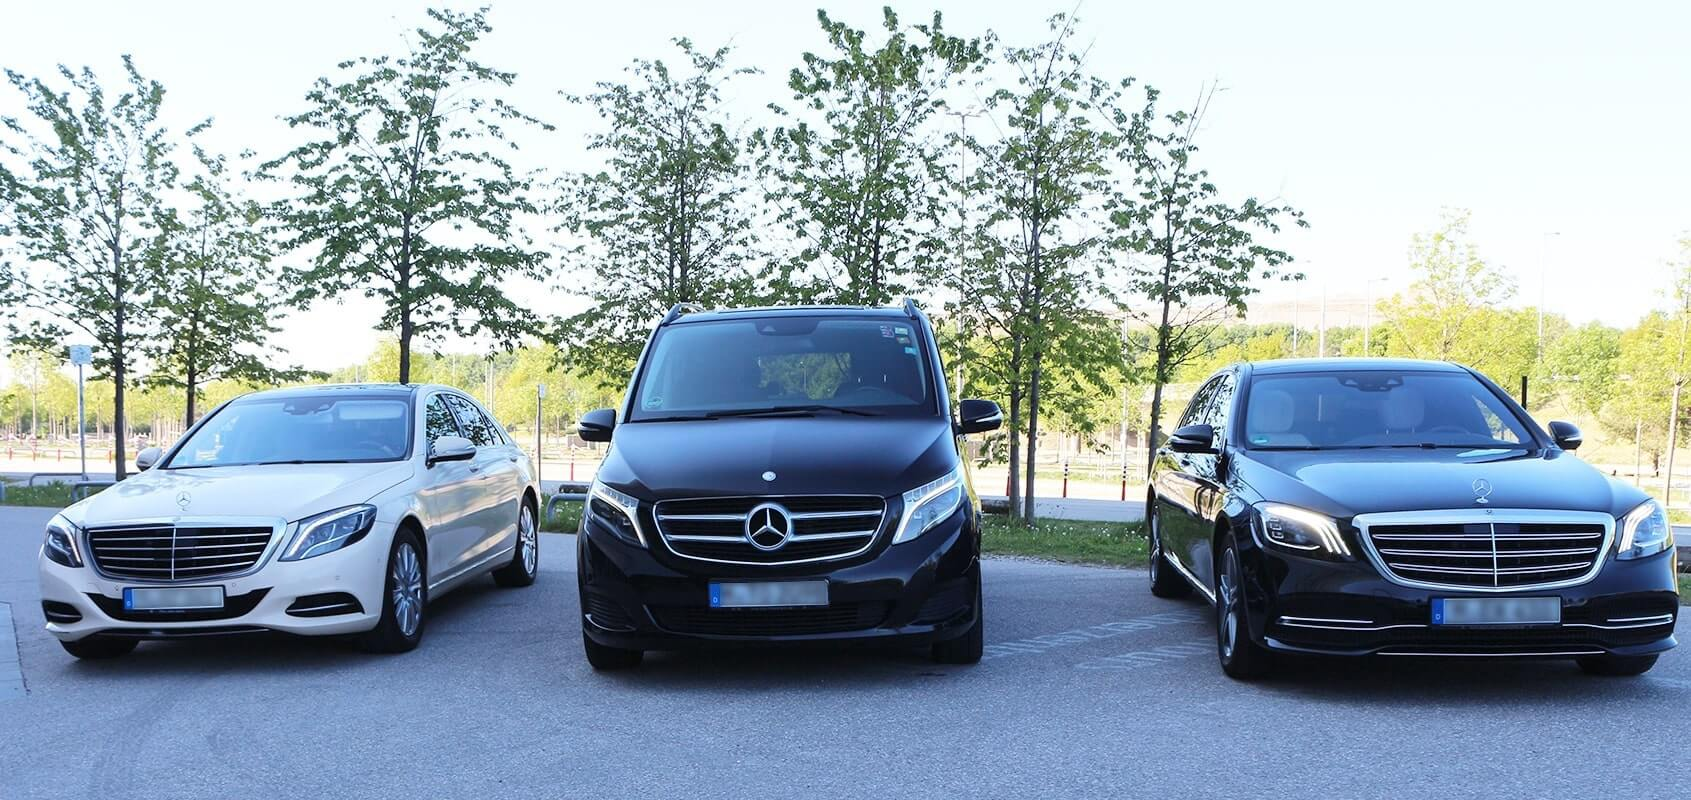 munich-airport-transfer-image-14